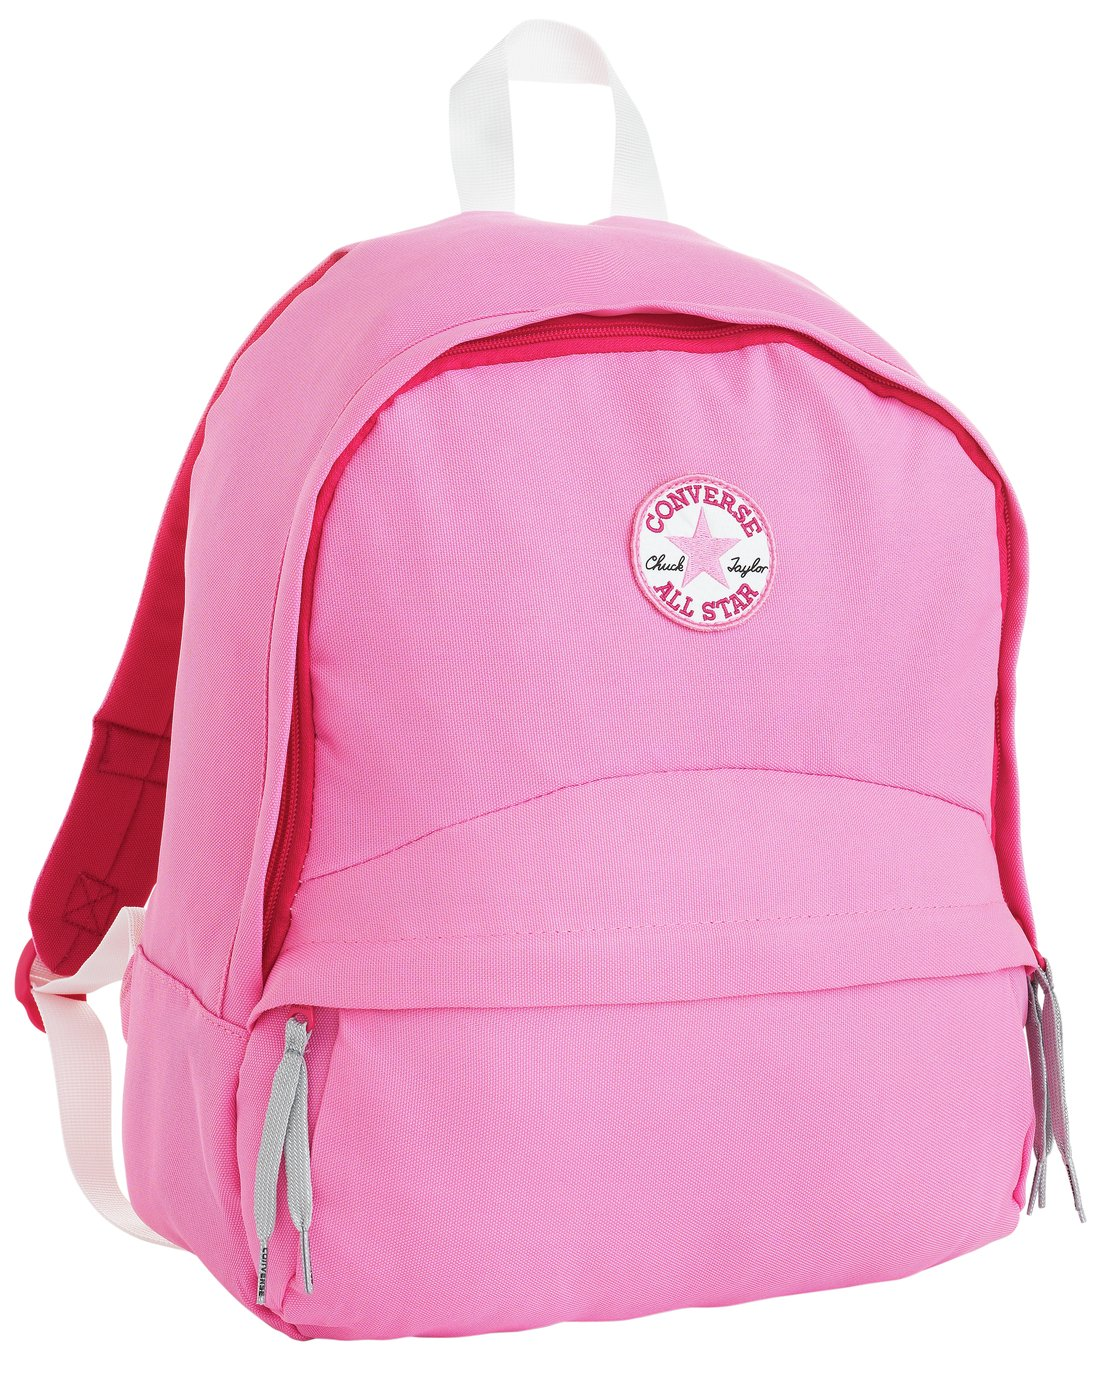 Image of Converse - All Star Light Pink Backpack